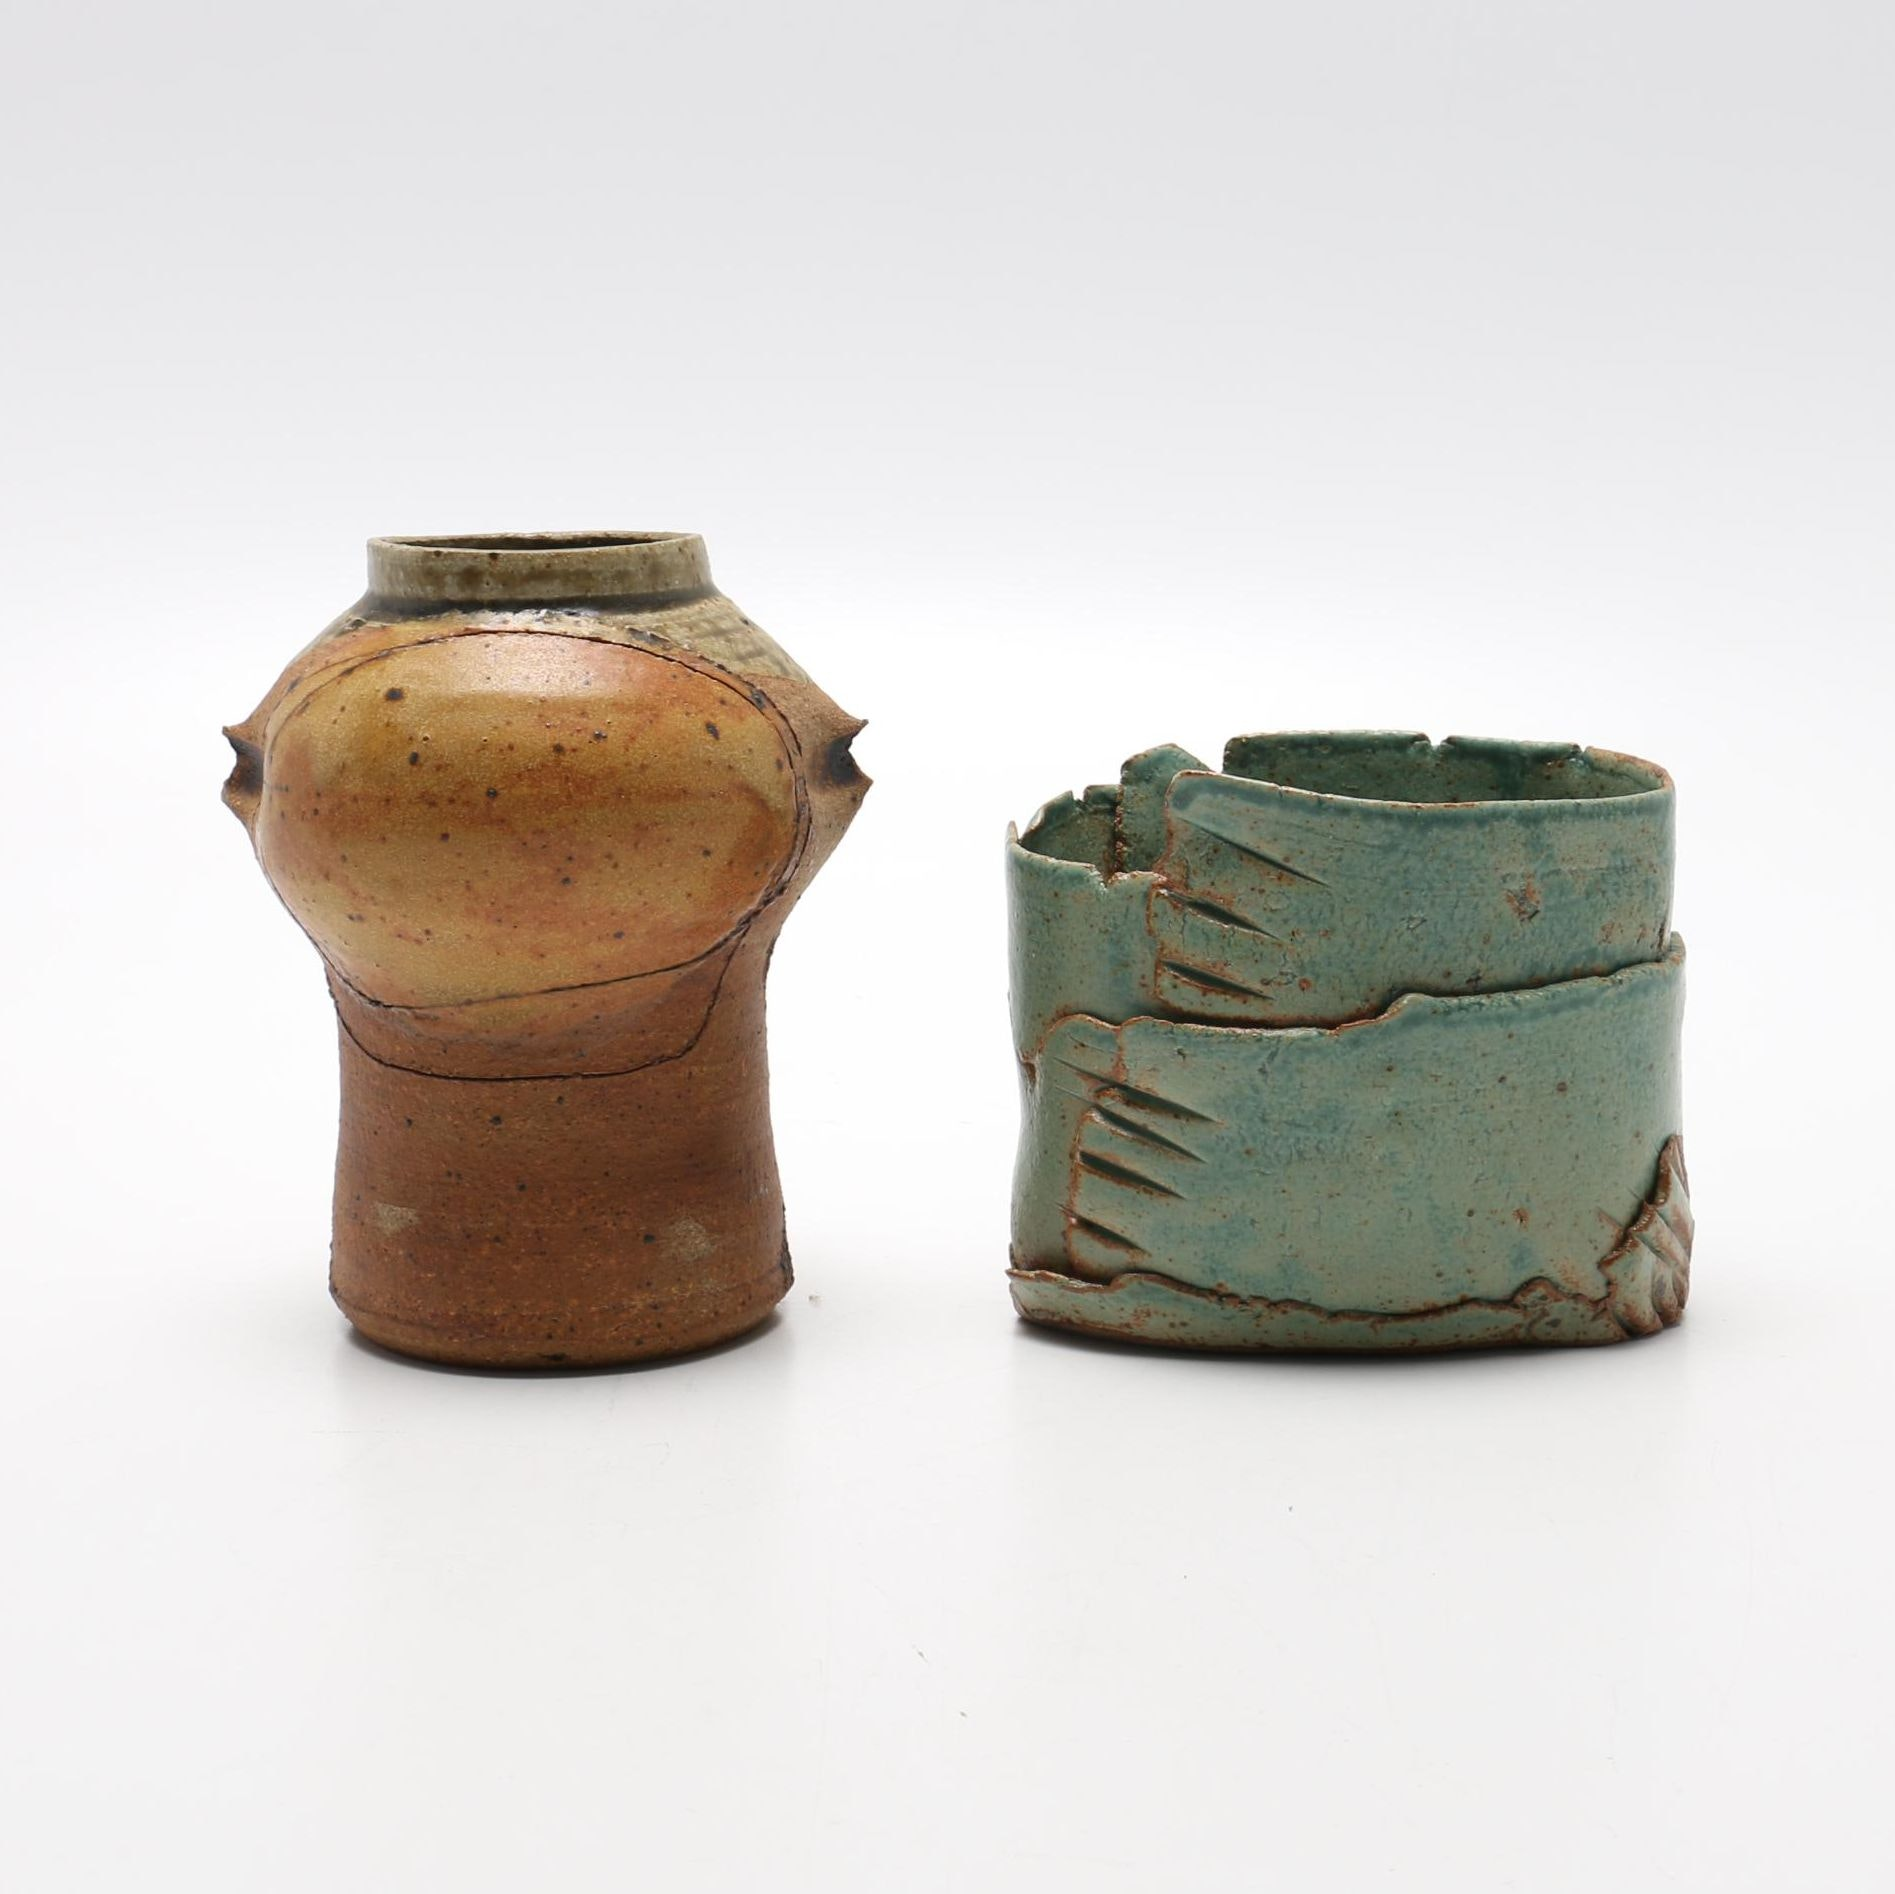 Pair of Thrown and Handbuilt Vessels